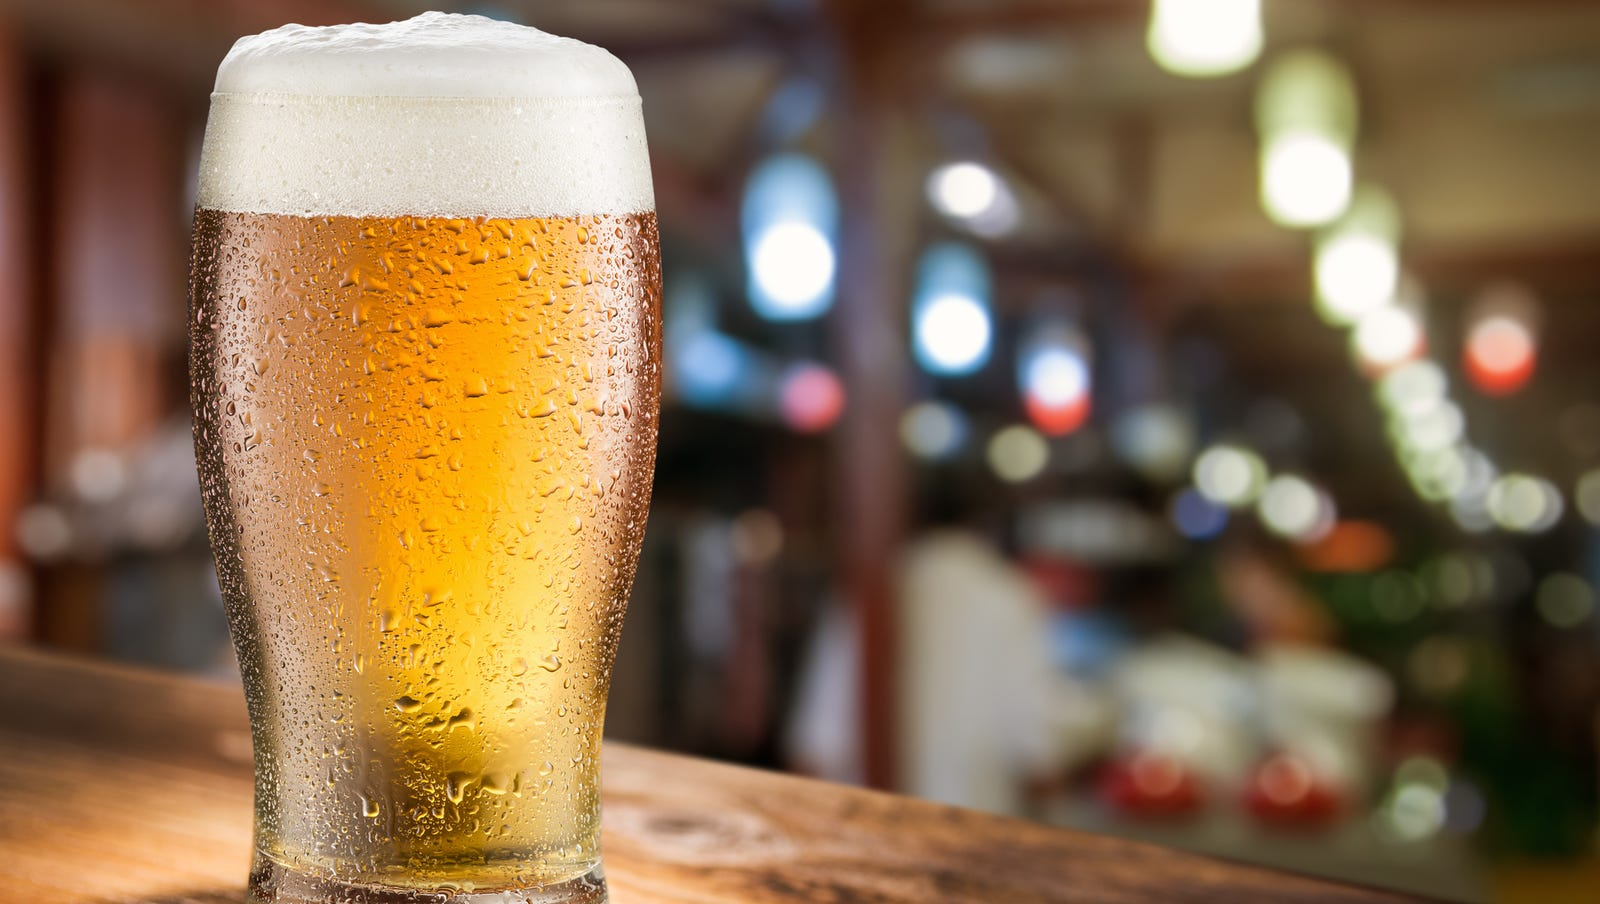 It's Beer Week in Atlantic City: Here's what to expect